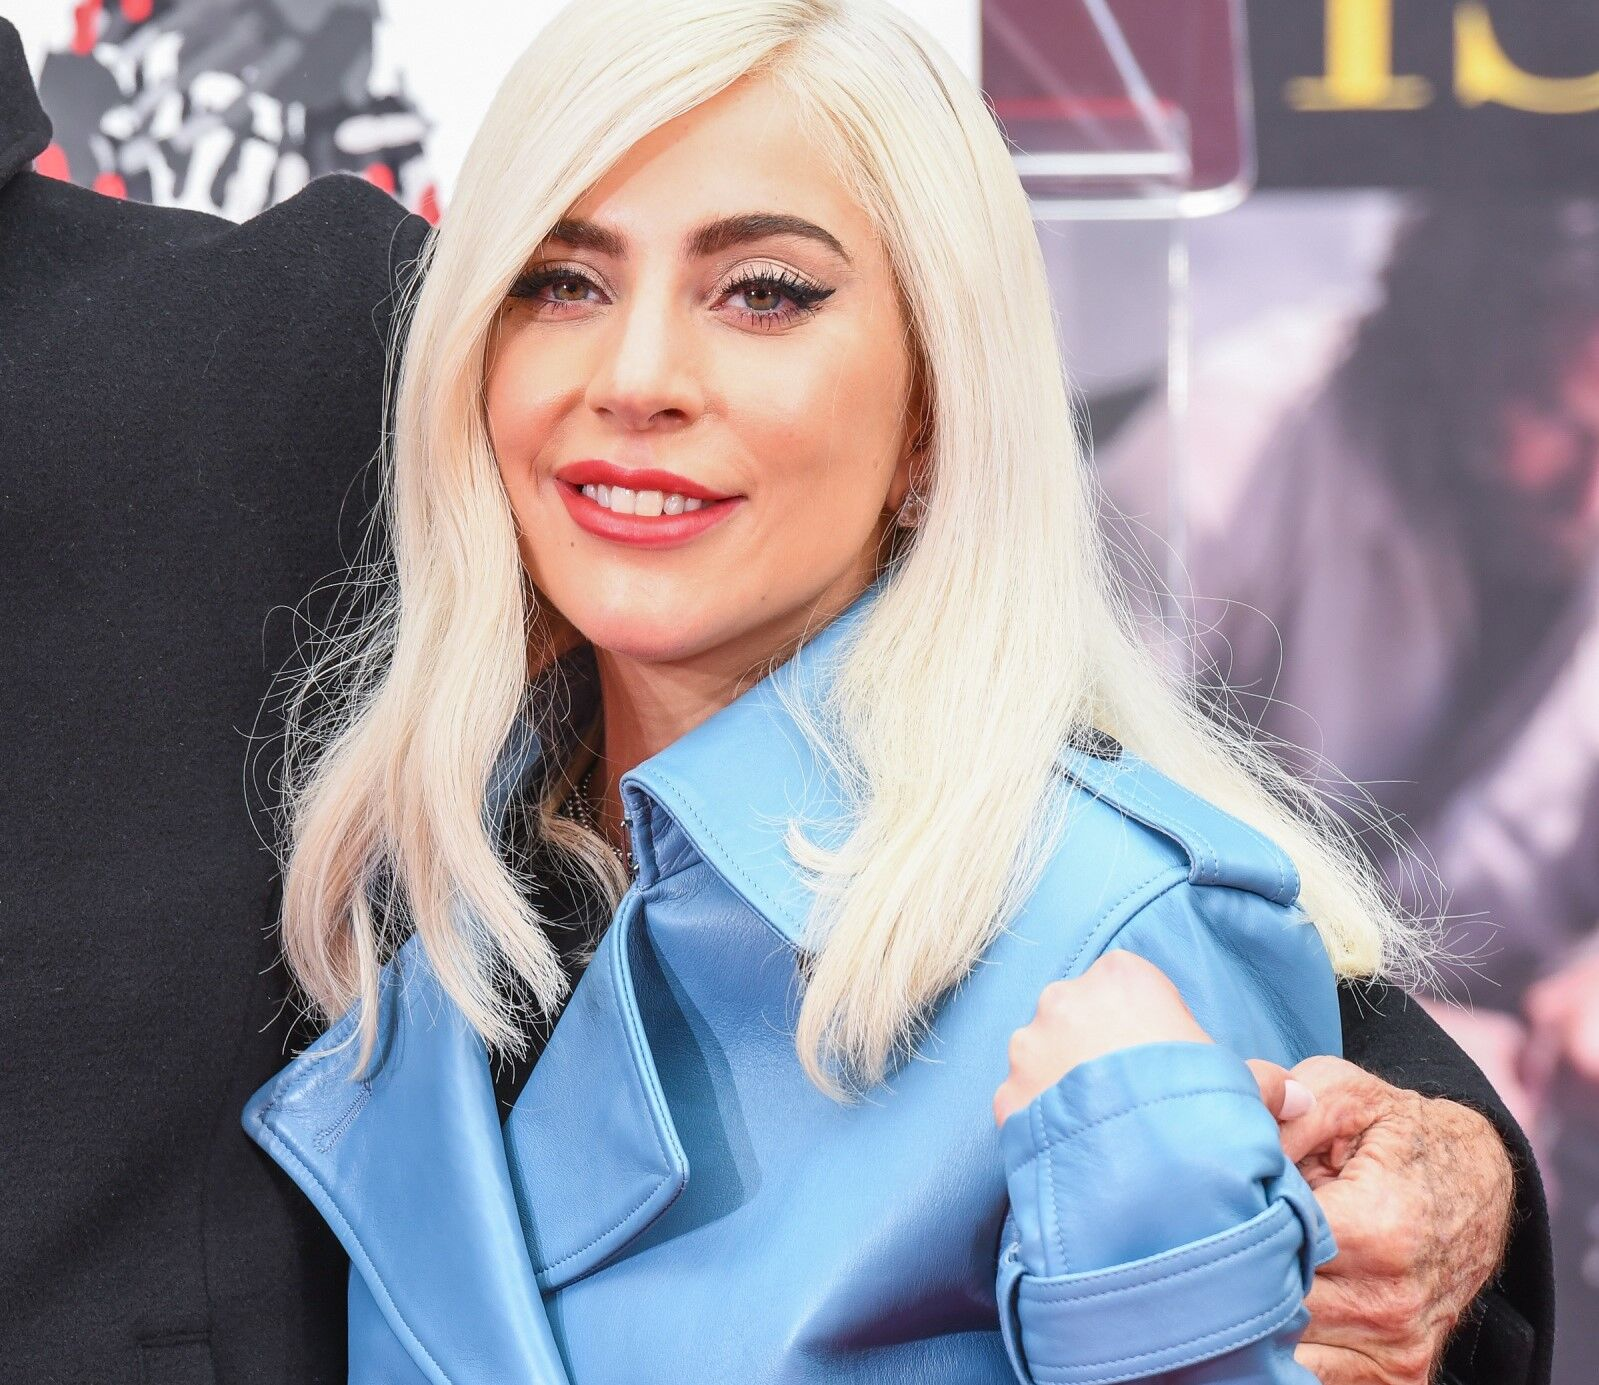 Style Diaries: How to dress like Lady Gaga on a budget